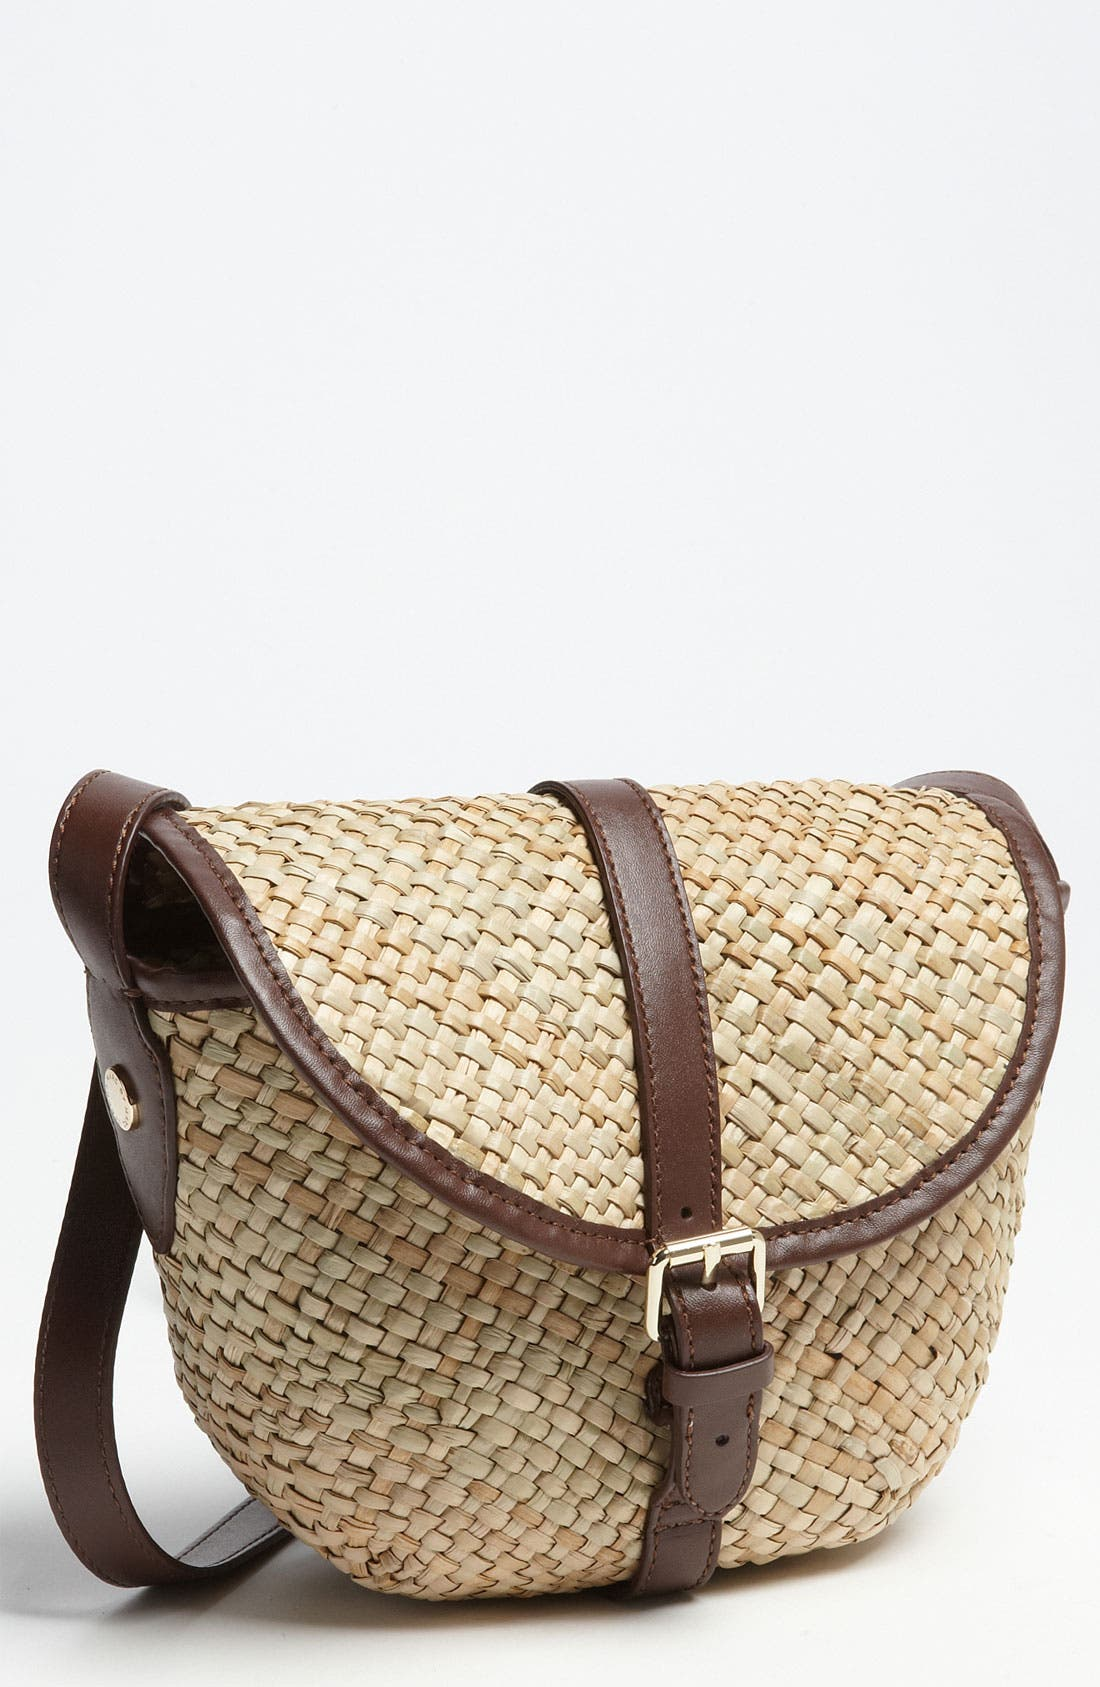 MARC BY MARC JACOBS, 'Preppy' Straw Canteen Bag, Main thumbnail 1, color, 247